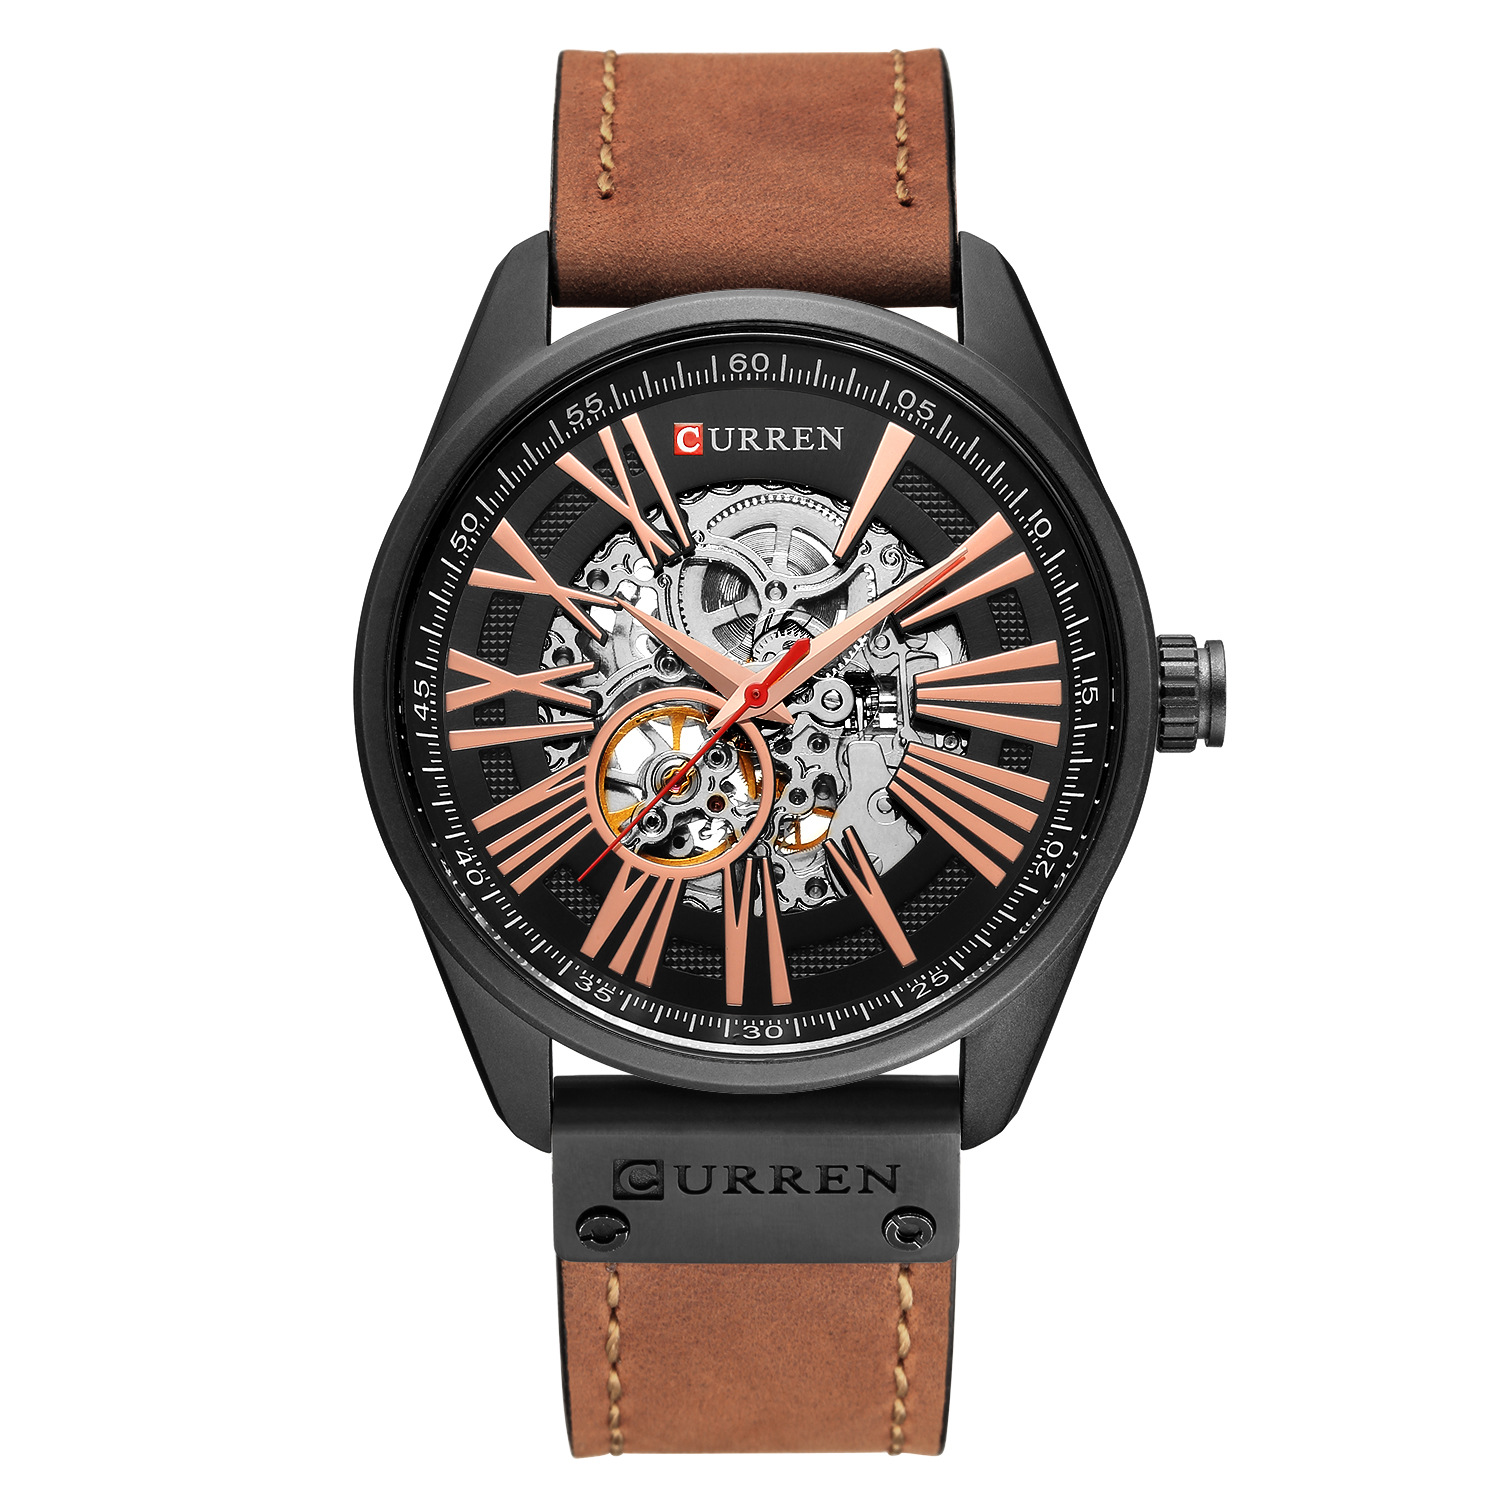 New CURREN Watch Men Skeleton Tourbillon Mechanical Watches Male Leather Automatic Self-wind Sports Clock Relogio Masculino shenhua men watches hollow transparent tourbillon mechanical watches men skeleton automatic self wind watch relogio masculino